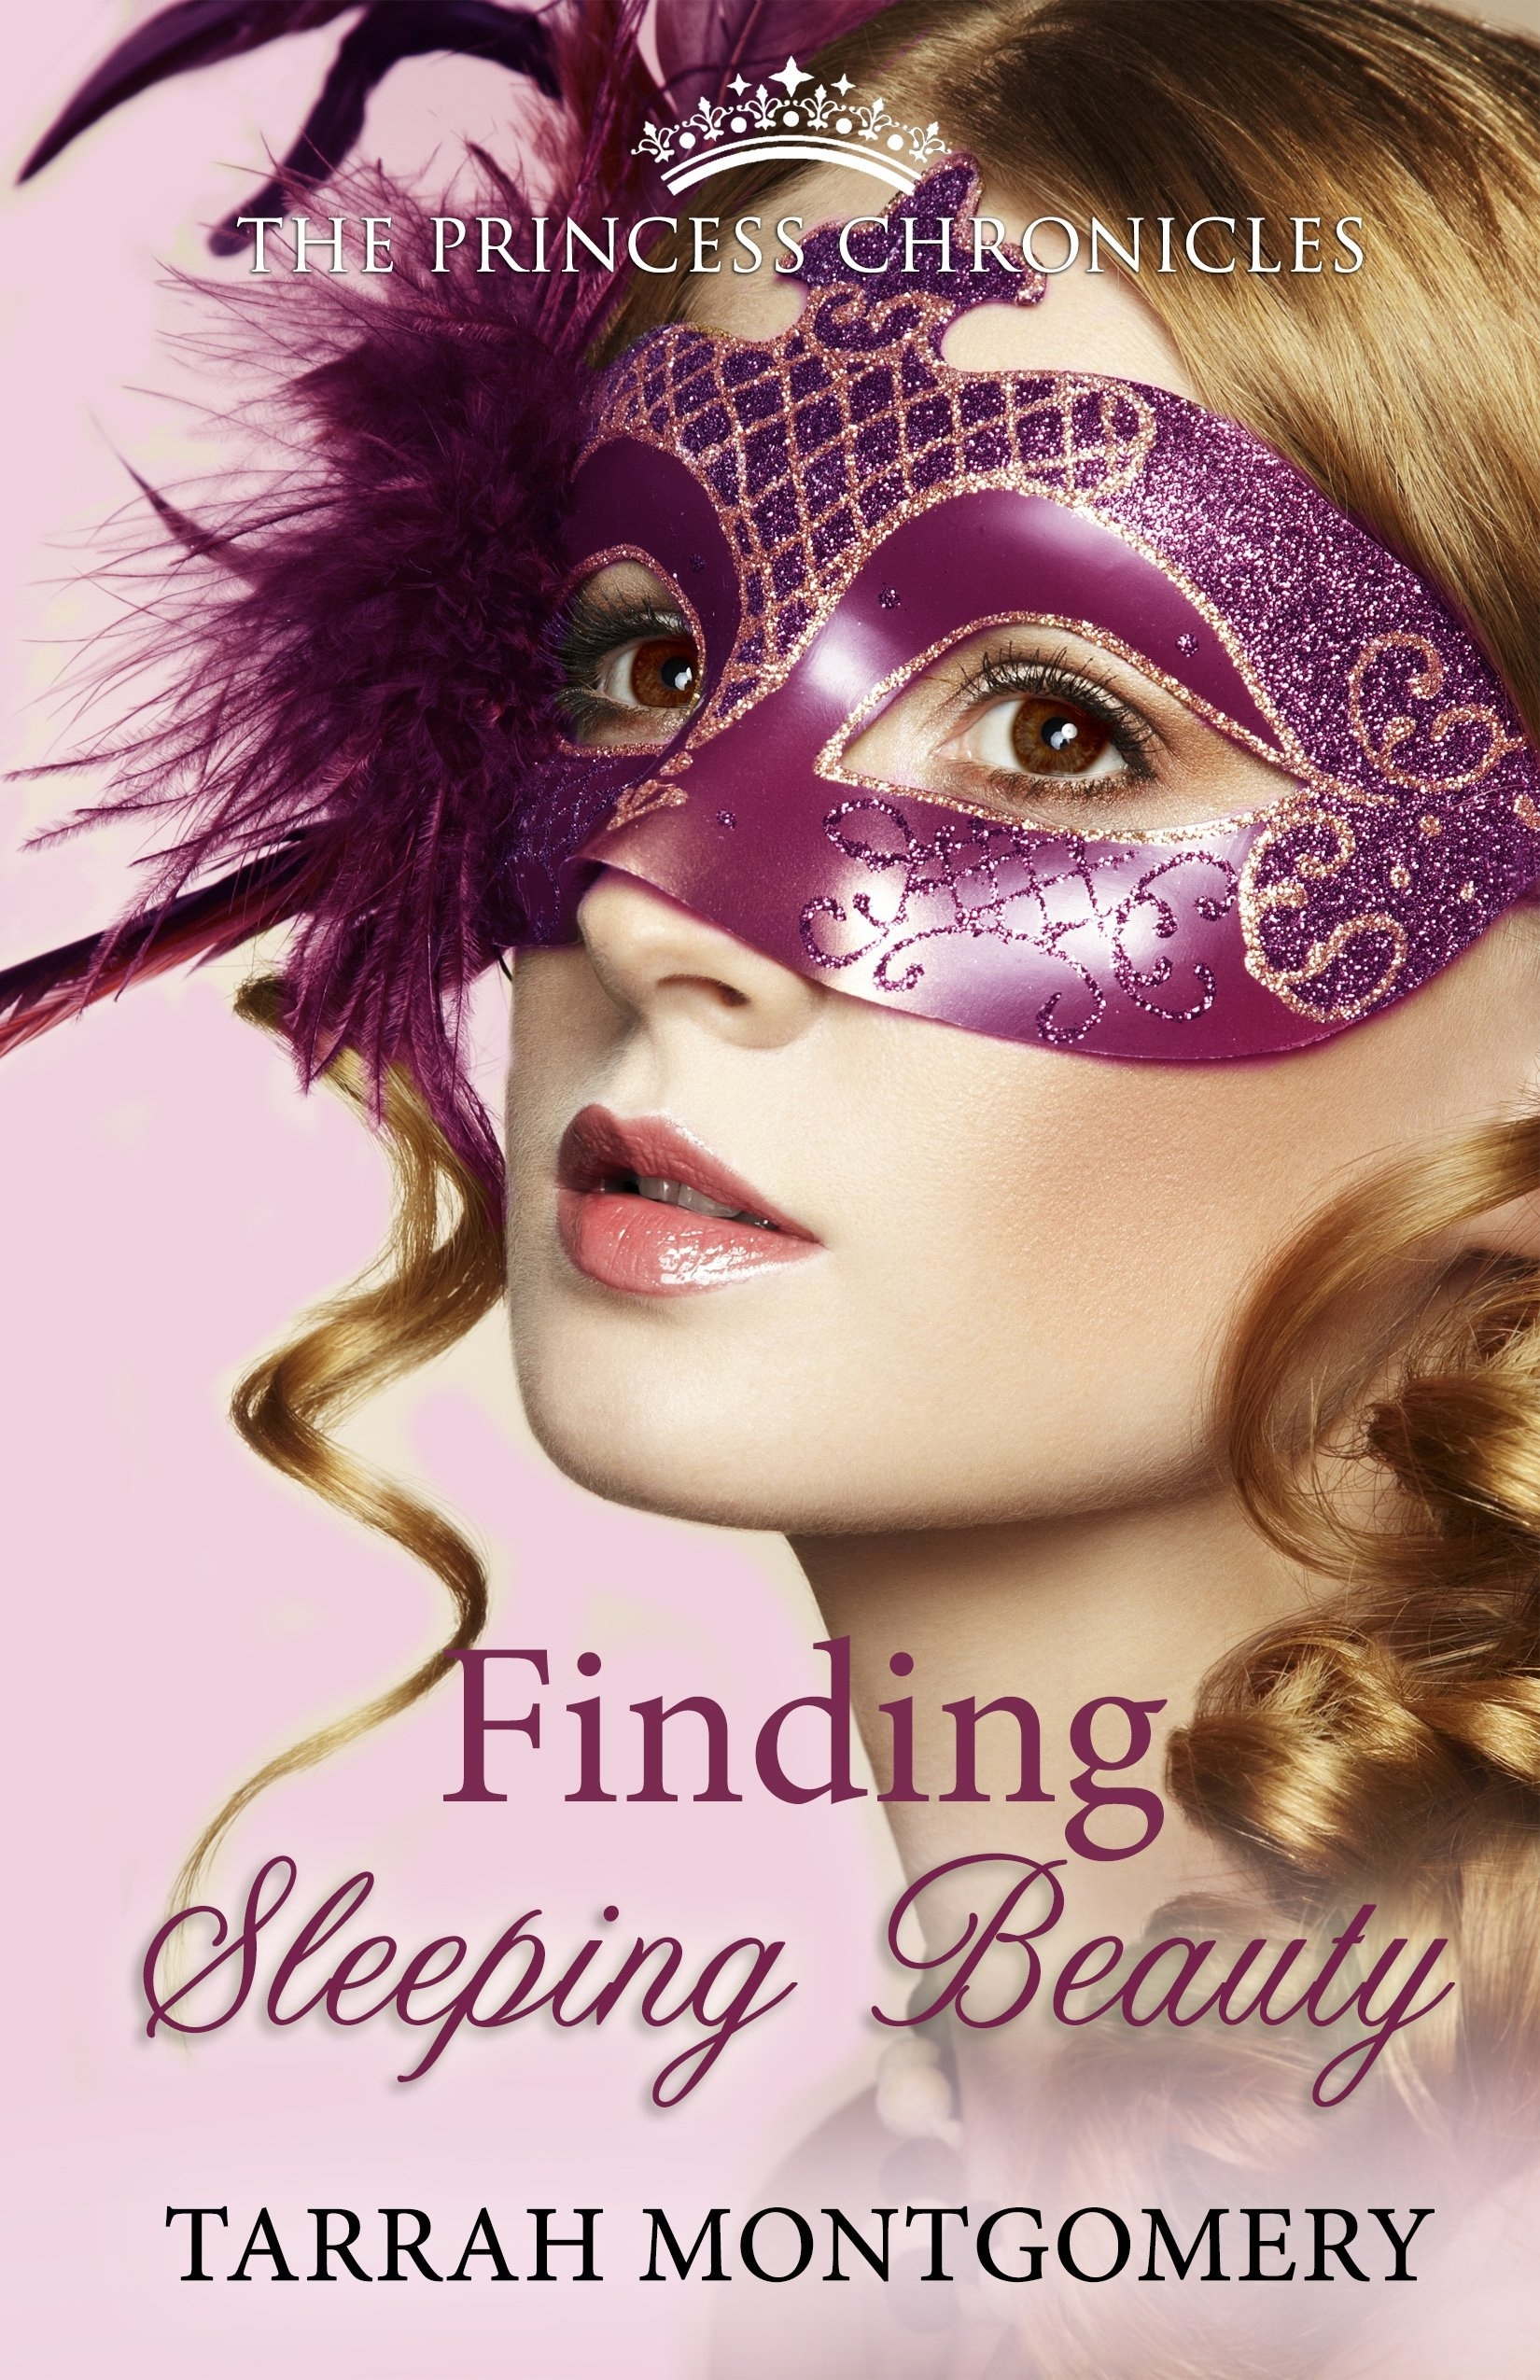 Finding Sleeping Beauty, Montgomery, Tarrah